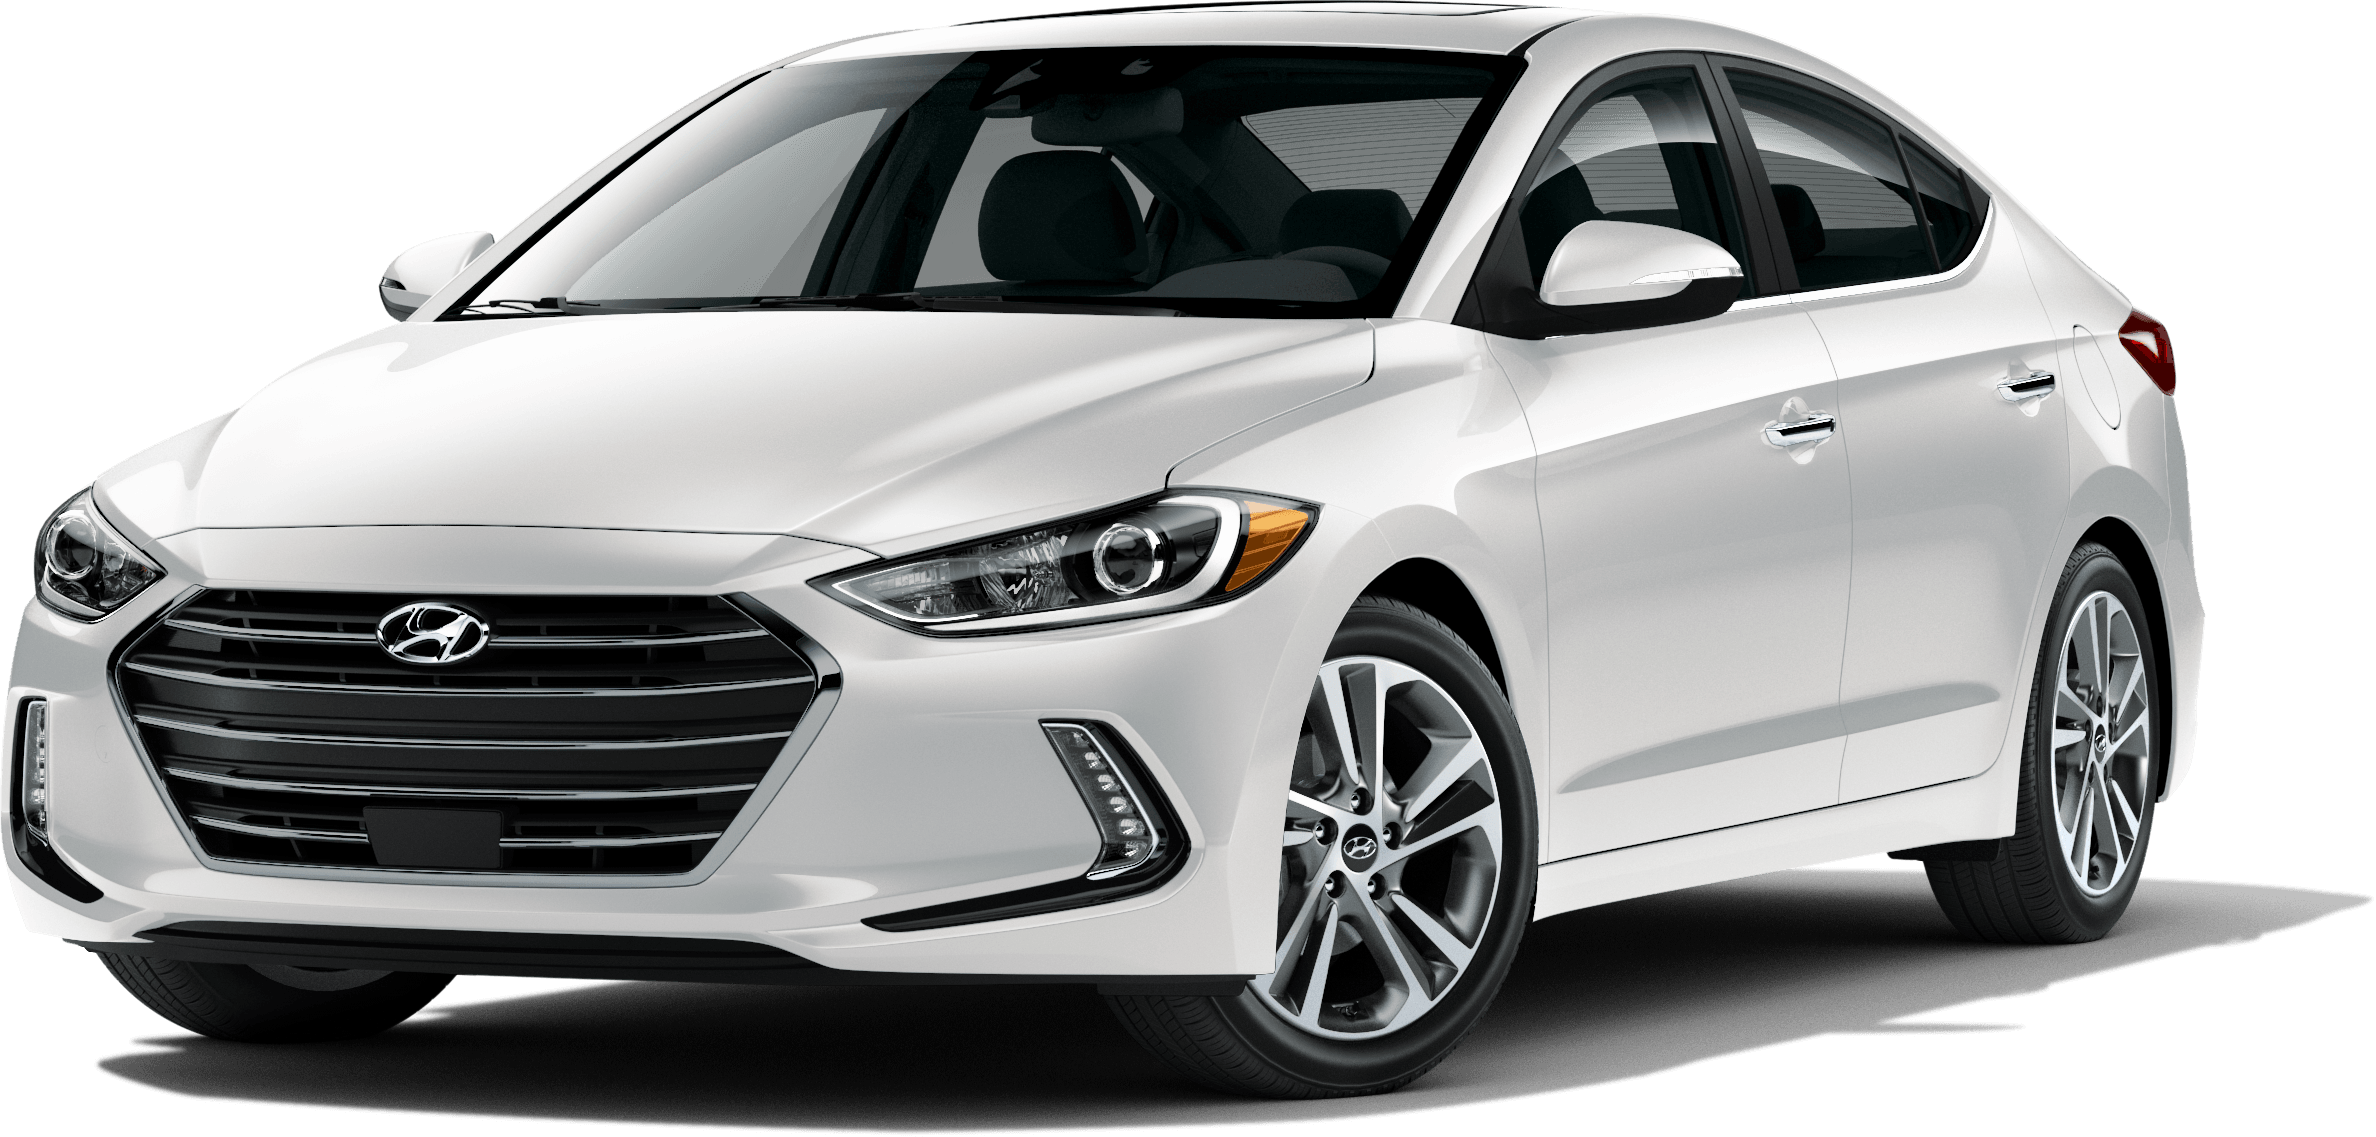 2018 Hyundai Elantra at Route 44 Hyundai in Raynham, MA